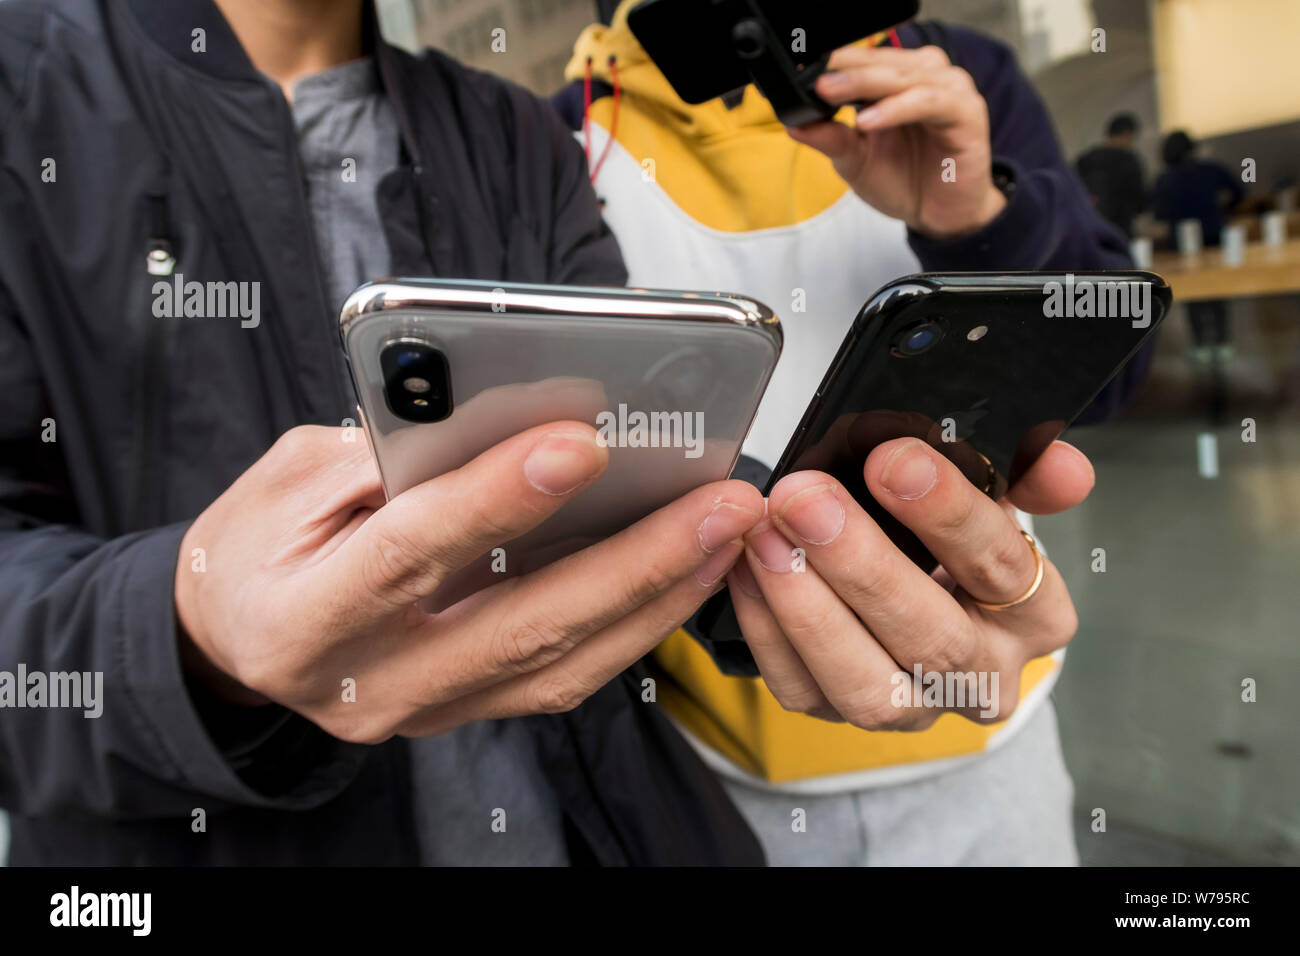 A Chinese customer is making an registration on his new iPhone X smartphone, right, in front of an Apple store in Shanghai, China, 3 November 2017. Stock Photo